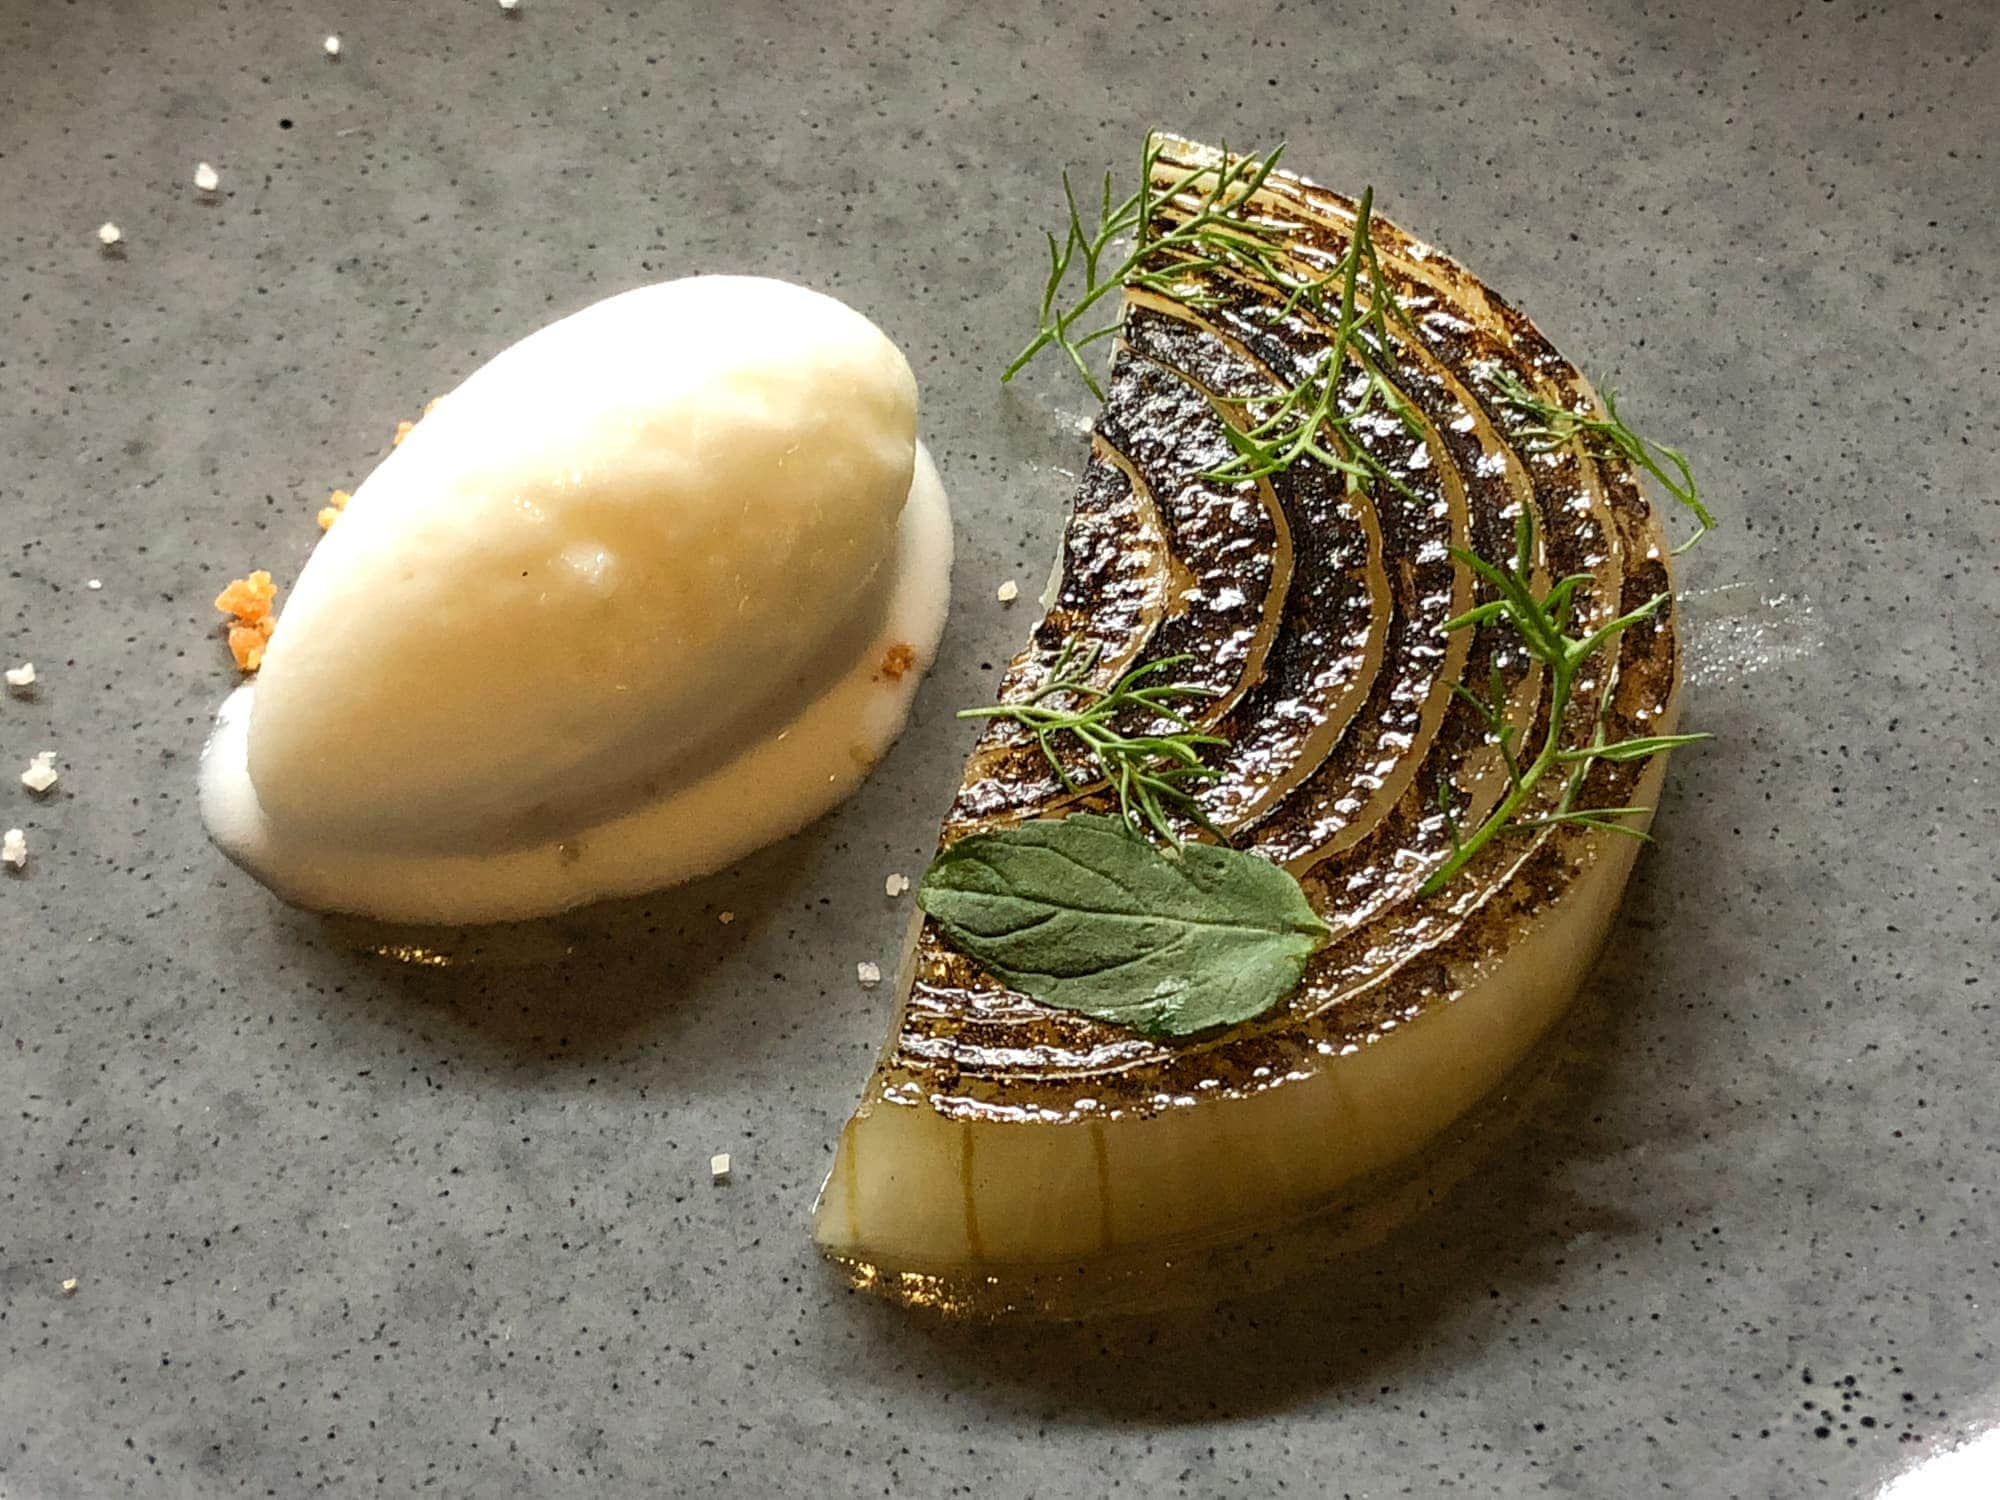 Onion, caramel, and ice cream